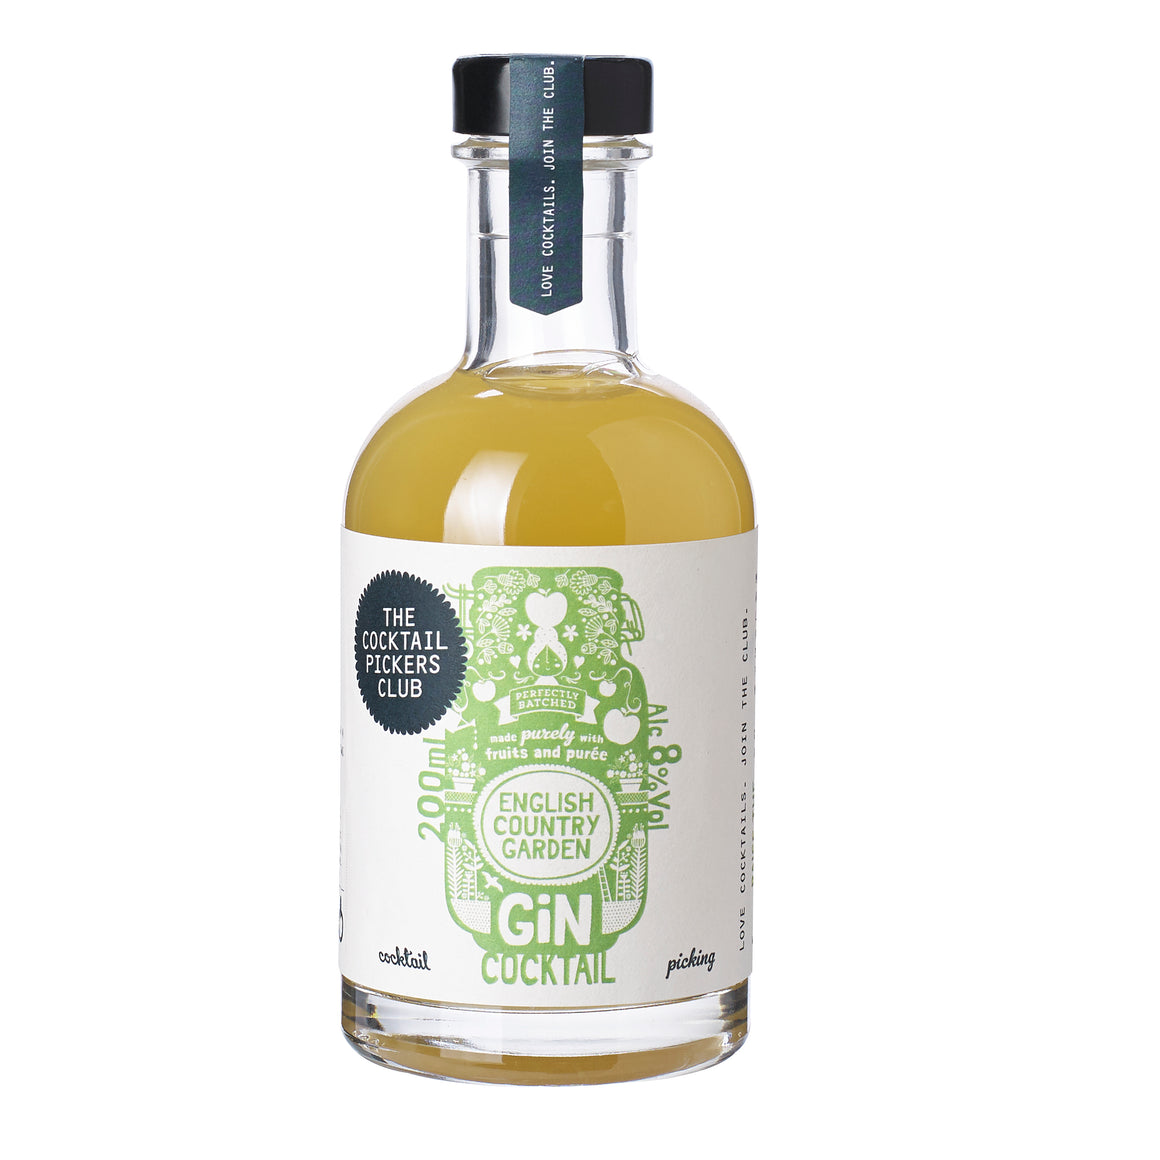 "'Mini Pickers"" English Country Garden Gin Cocktail 2x 200ML"